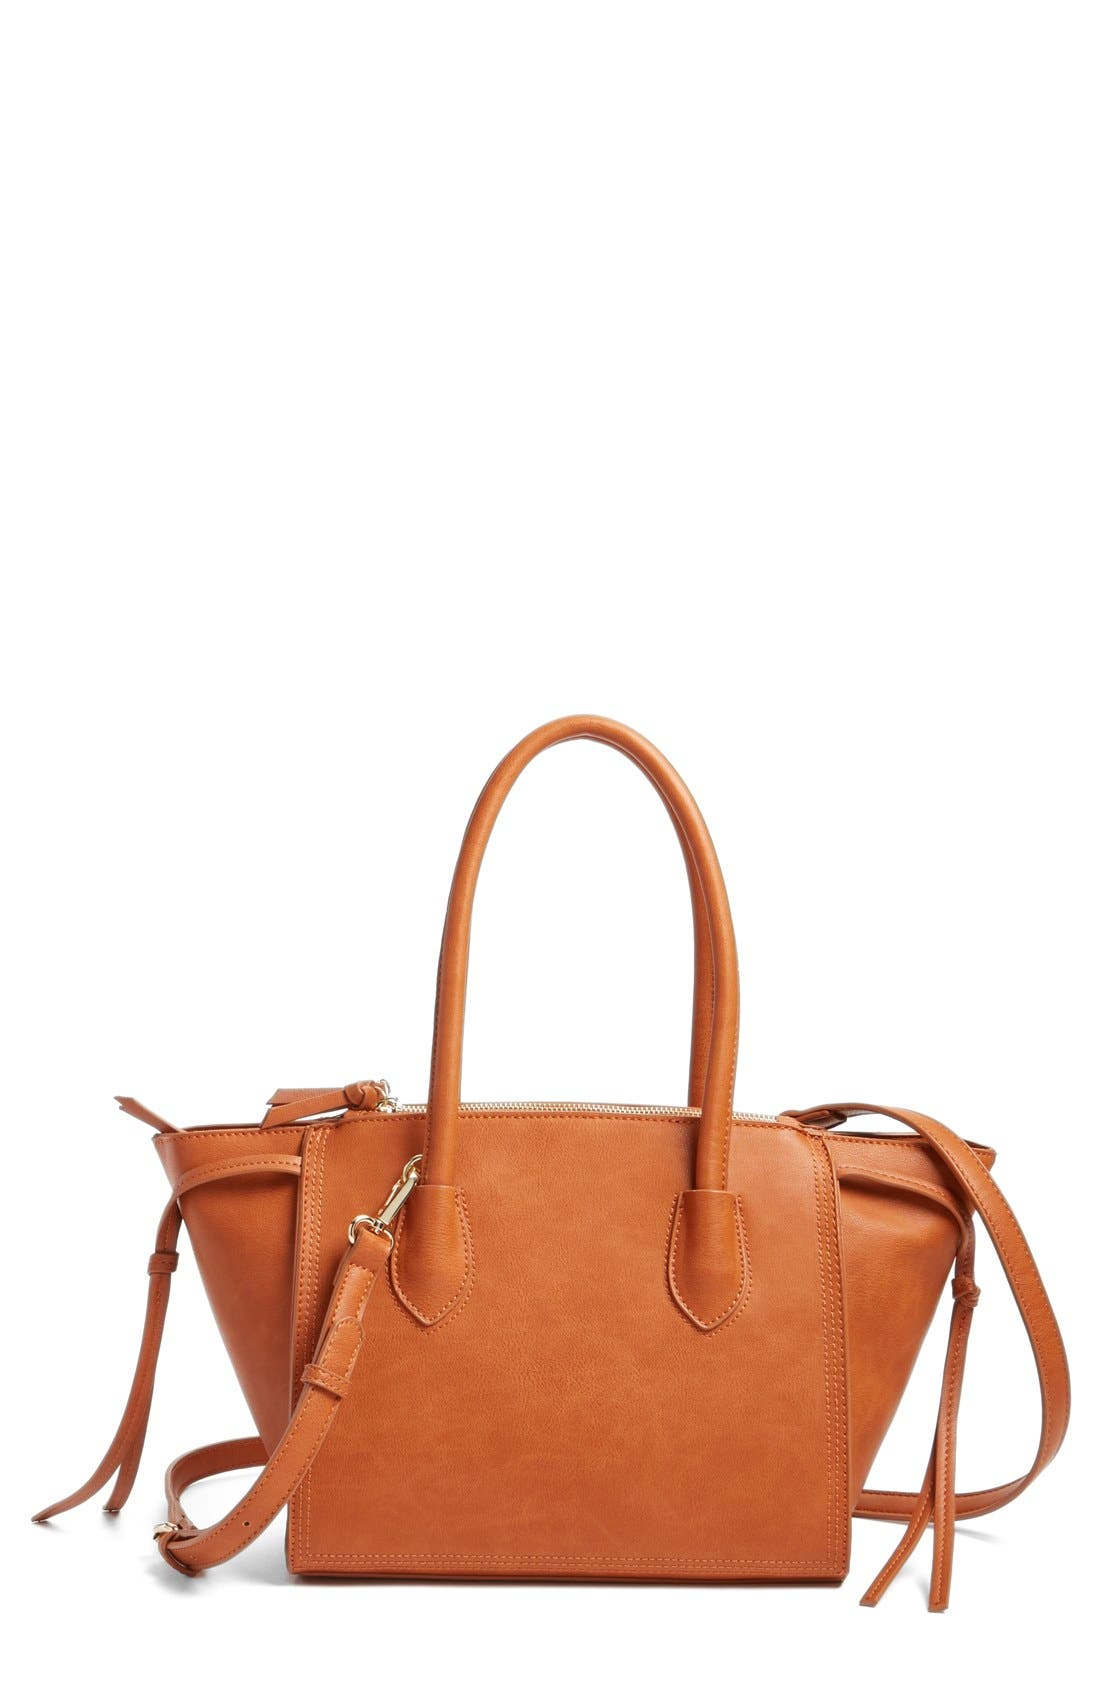 'Farris' Faux Leather Winged Satchel,                             Main thumbnail 1, color,                             Cognac